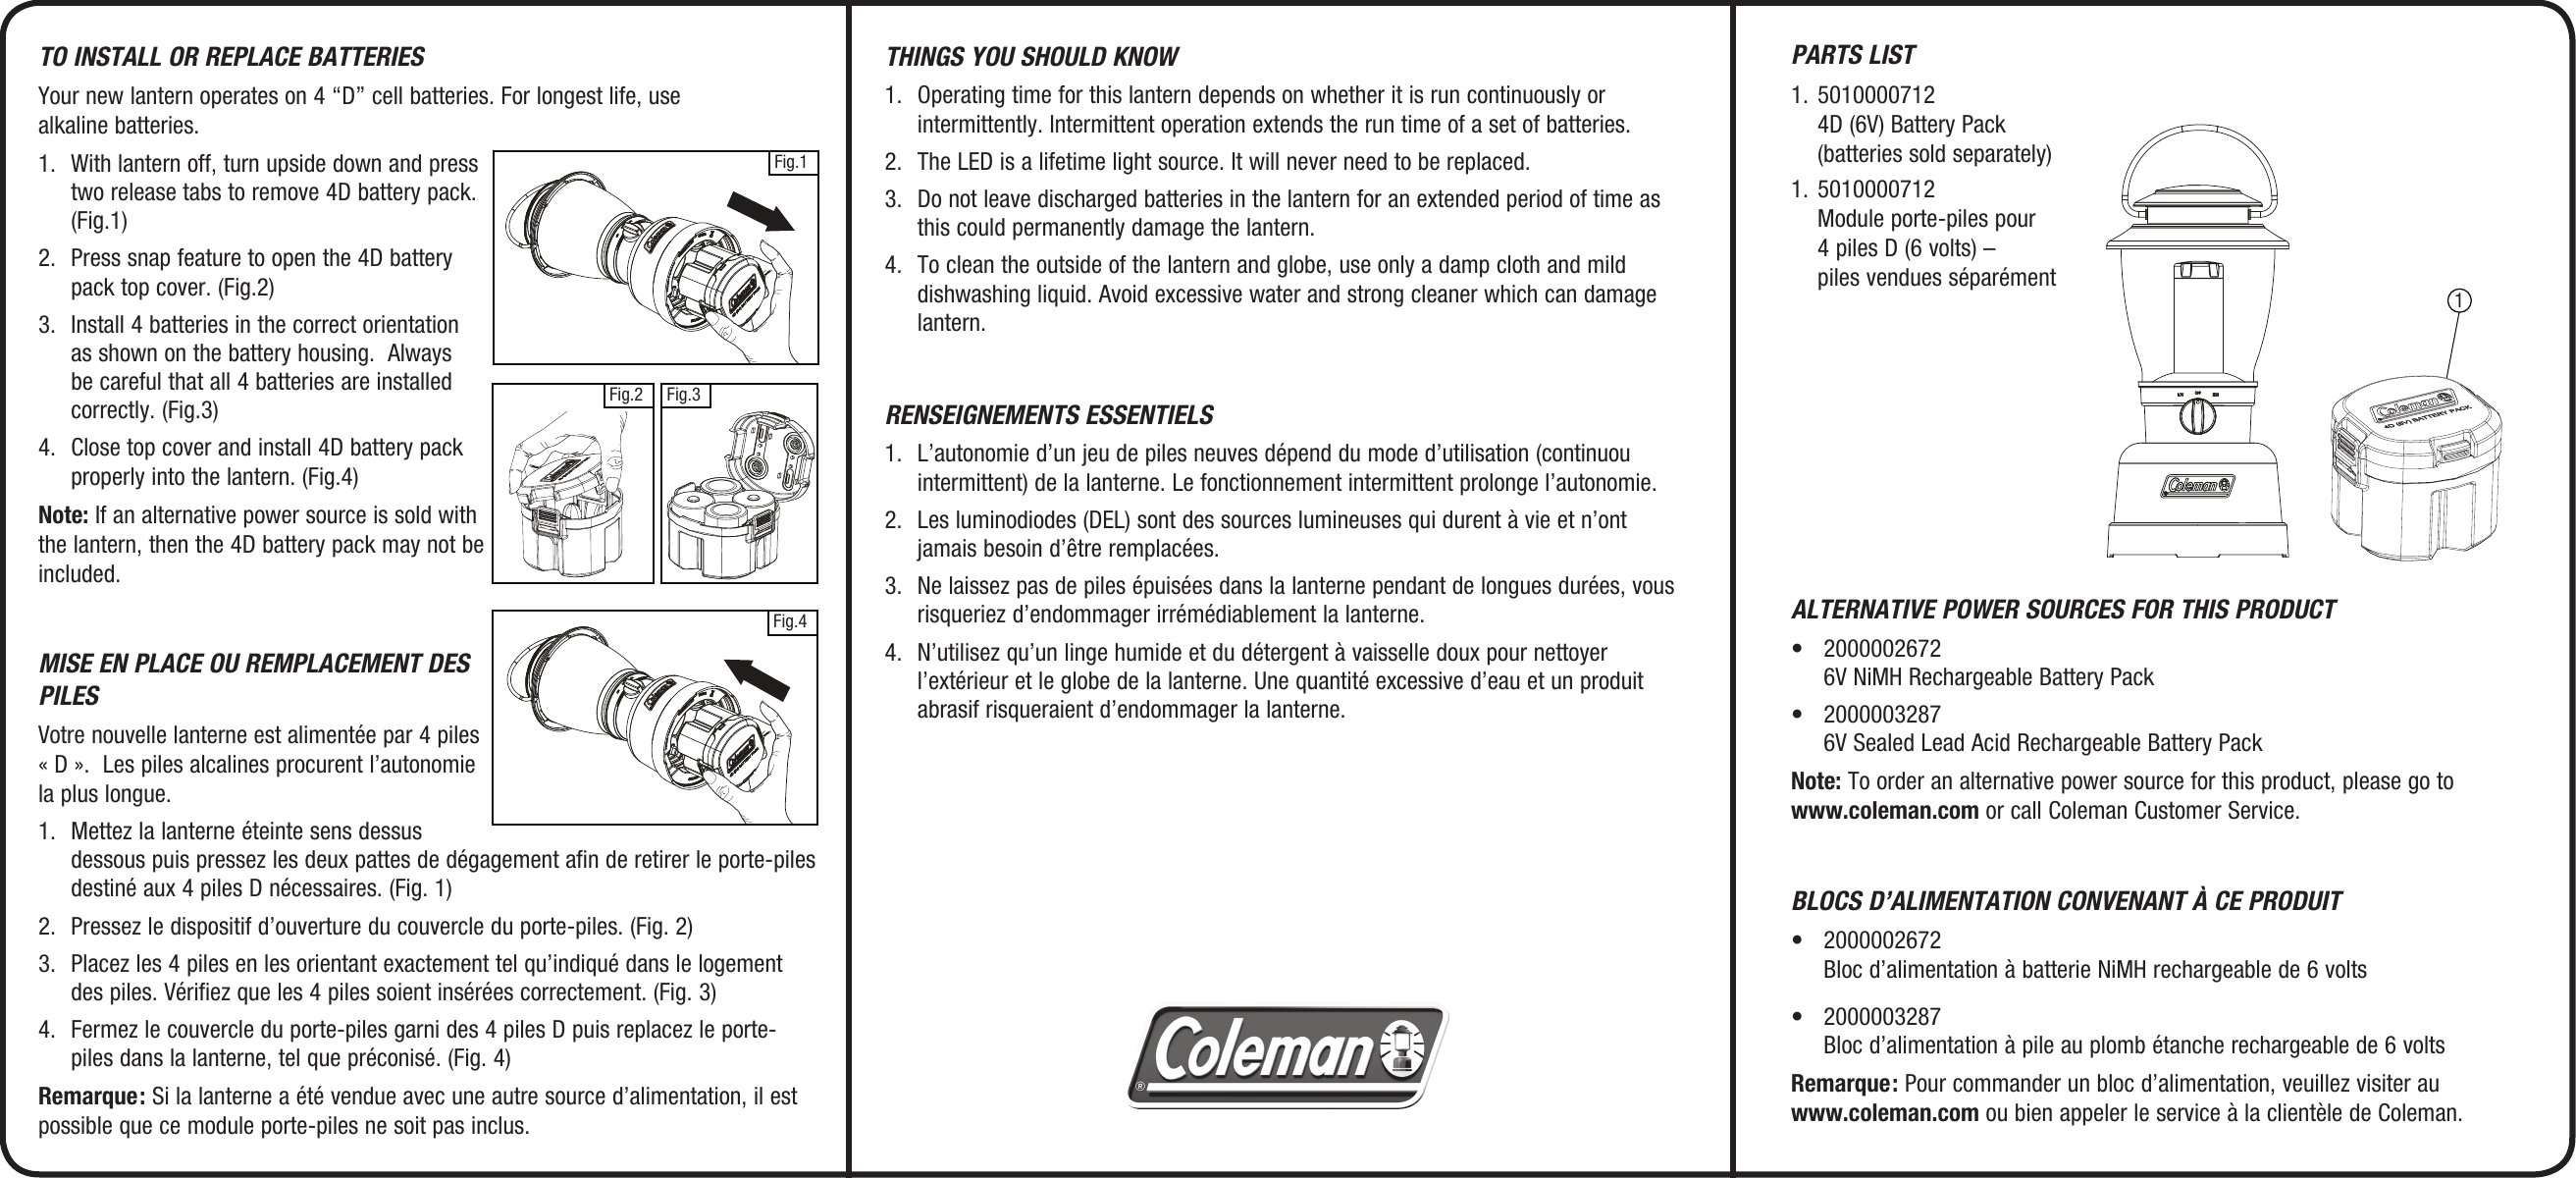 Coleman Camping Equipment 2000008554 Users Manual 2000002670